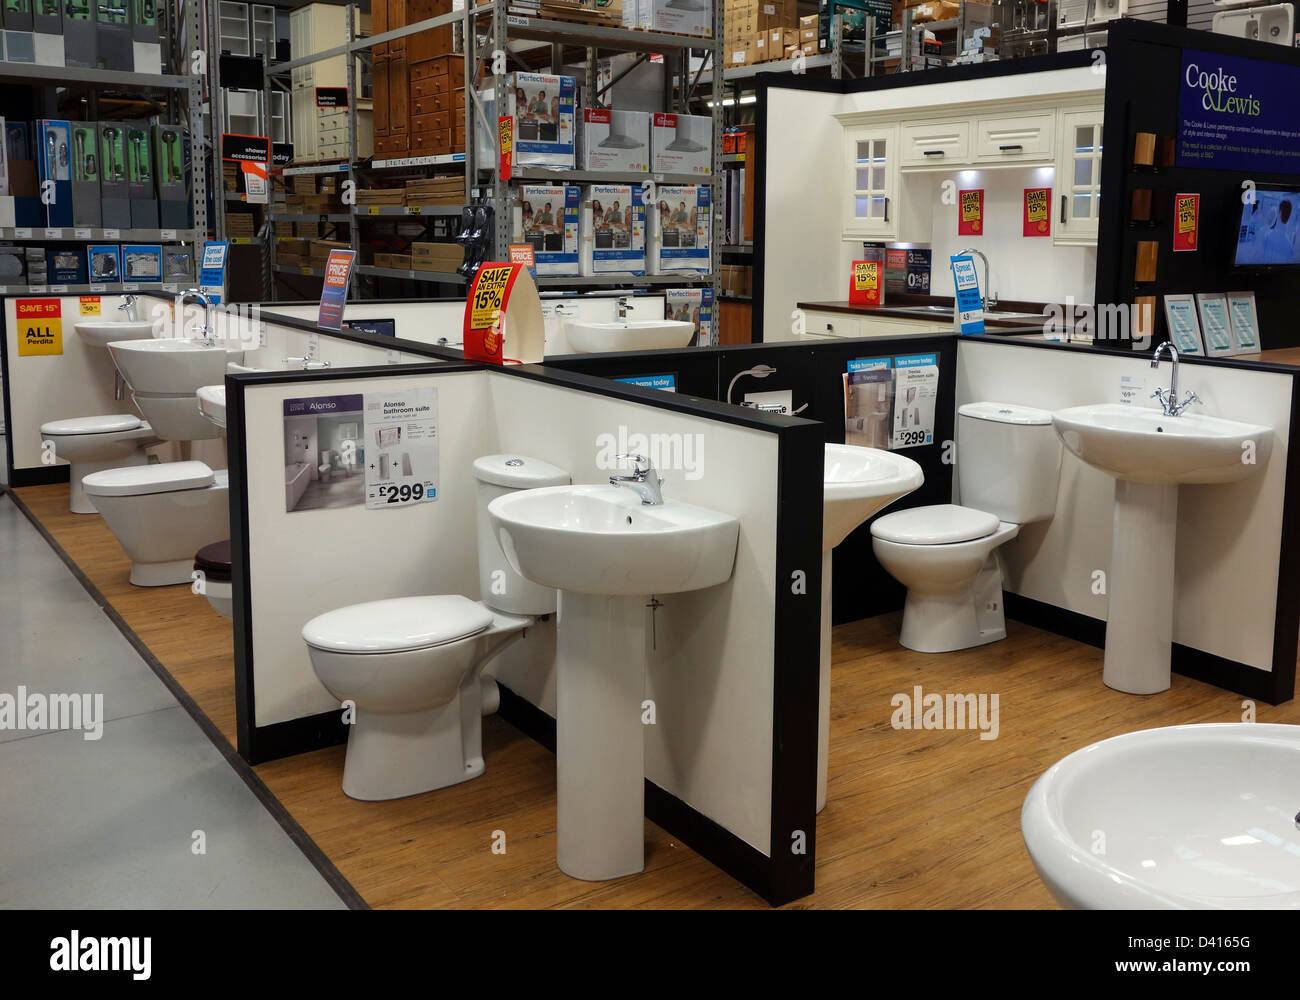 Bathroom Suites On Display In A B & Q Store Stock Photo: 54116540